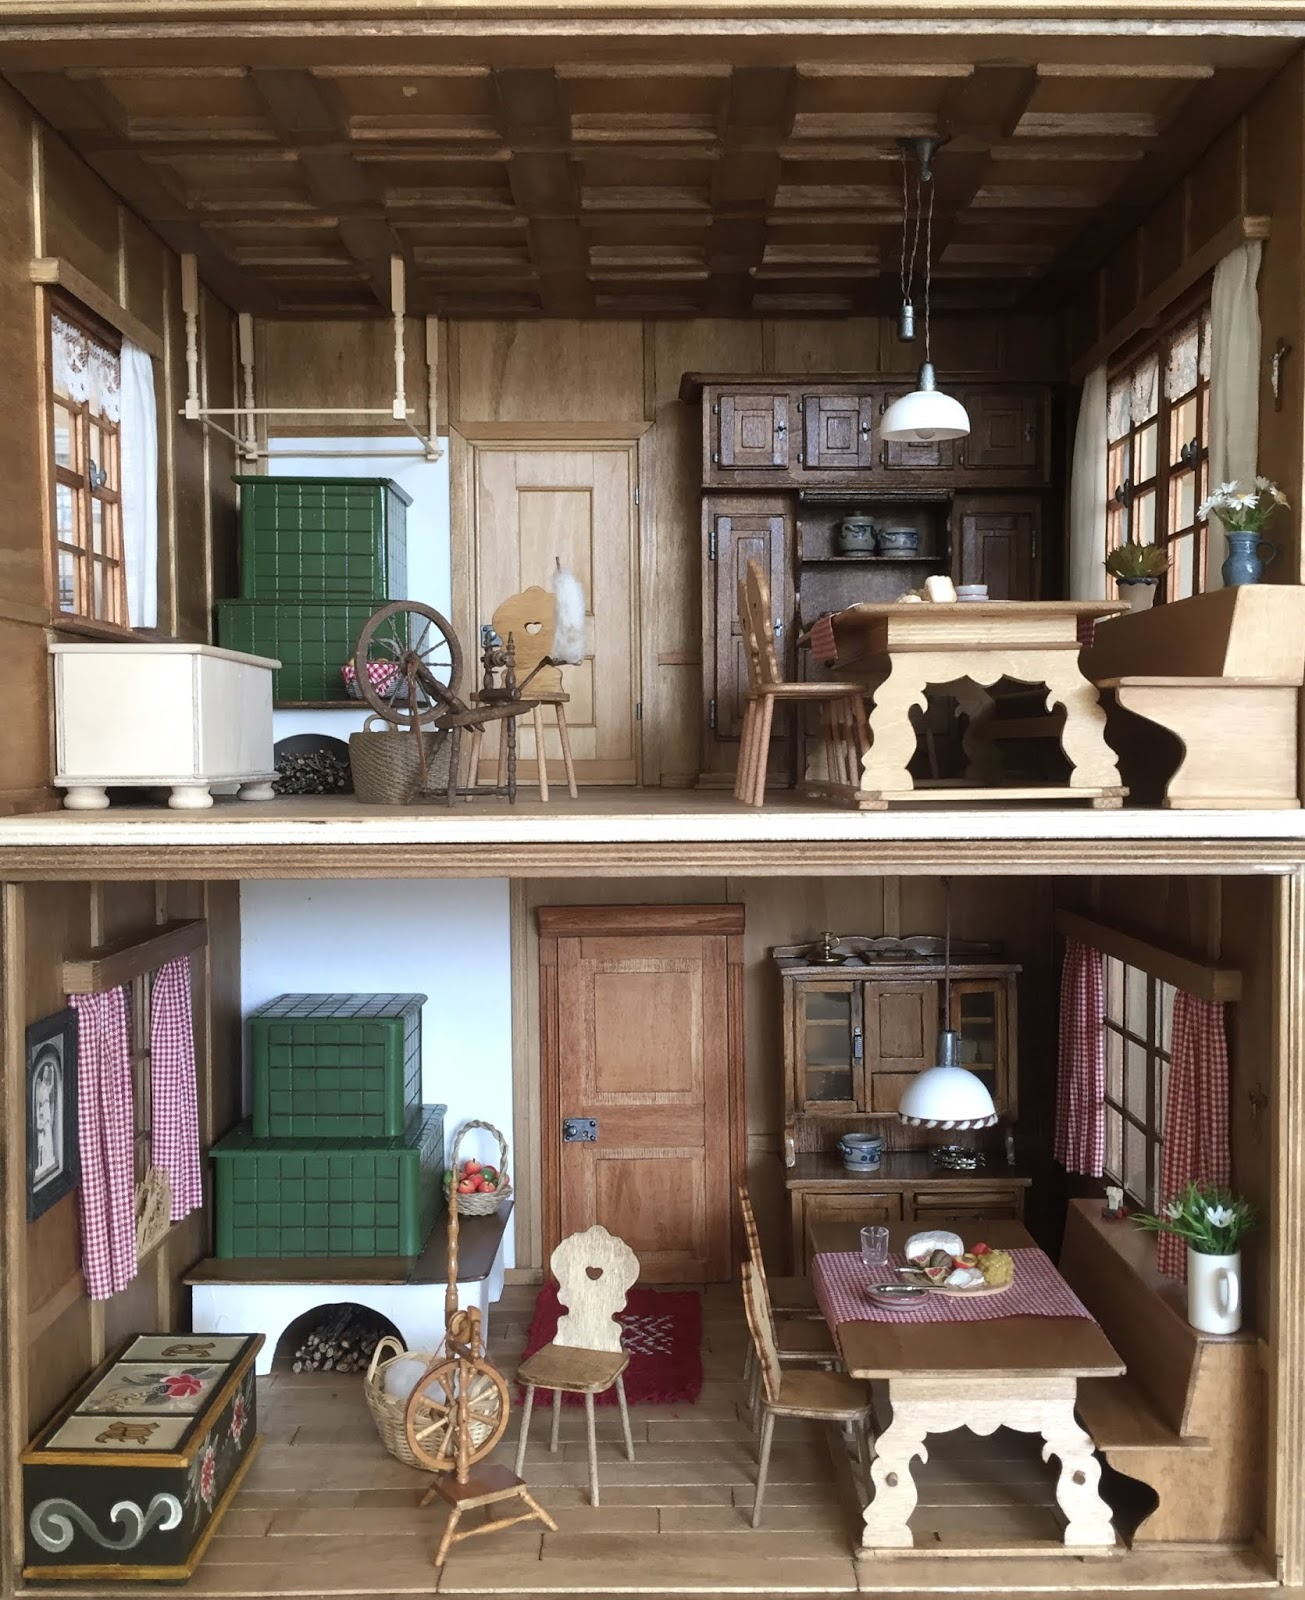 112 Scale Modern Model Houses Old Farmhouse Roombox X2 Wiring But Most Likely It Fits Her More Traditional View Of An Room Better Checkered Curtains